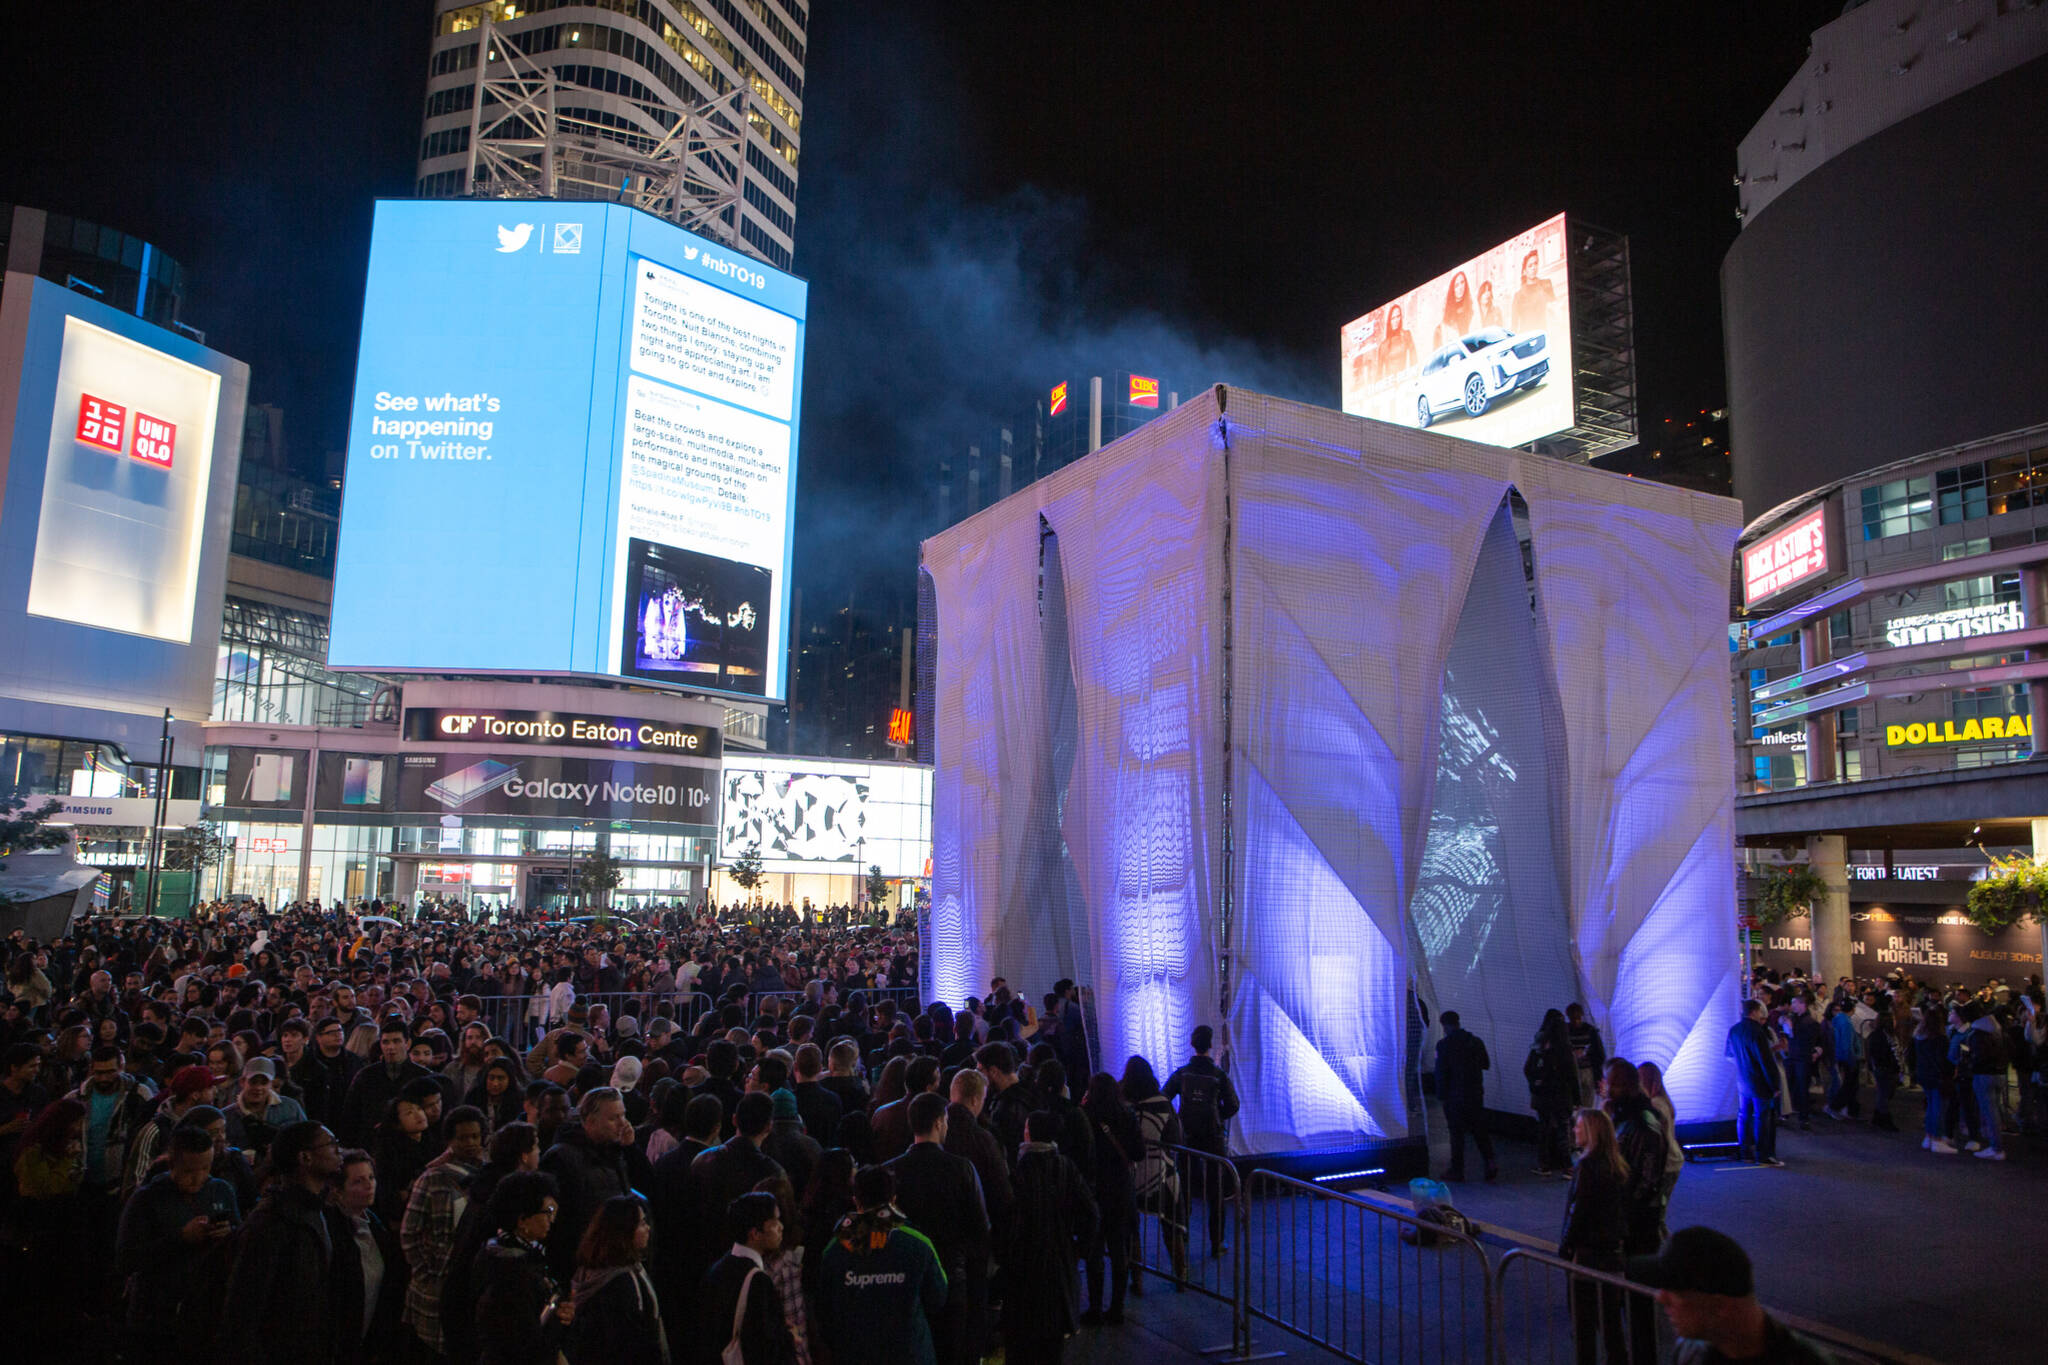 nuit blanche toronto 2019